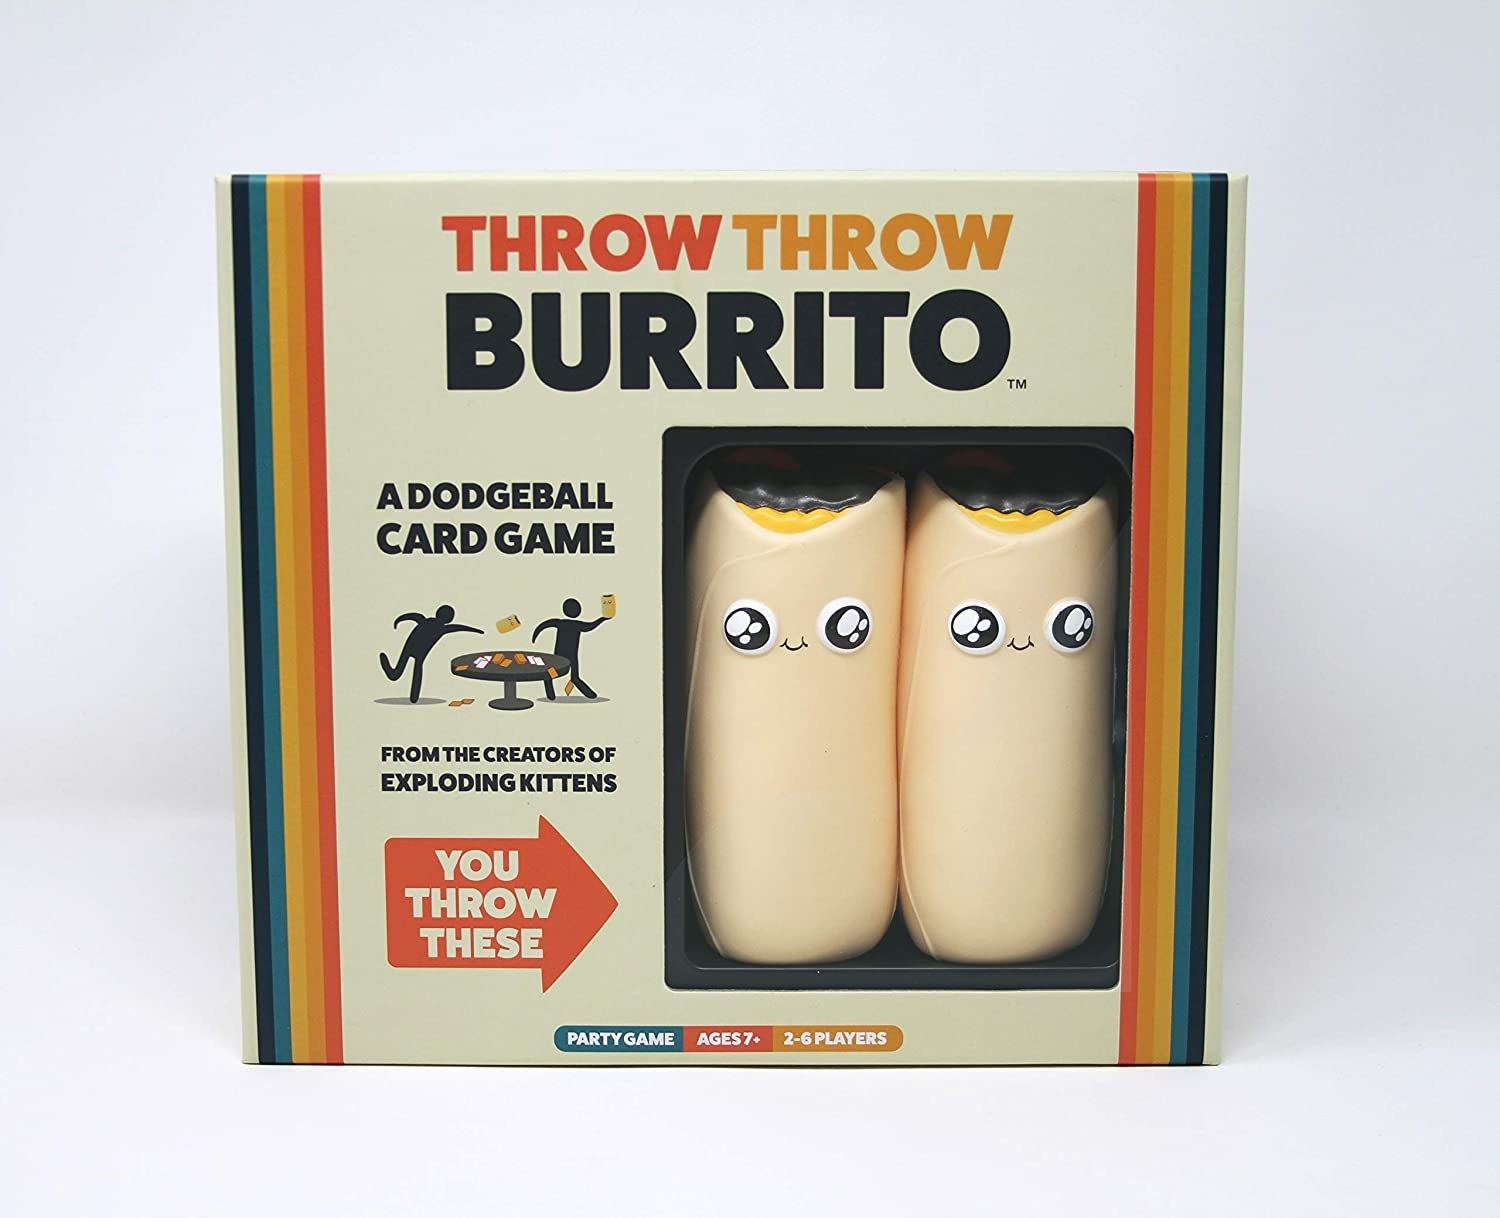 The game box, which shows two plush burritos inside